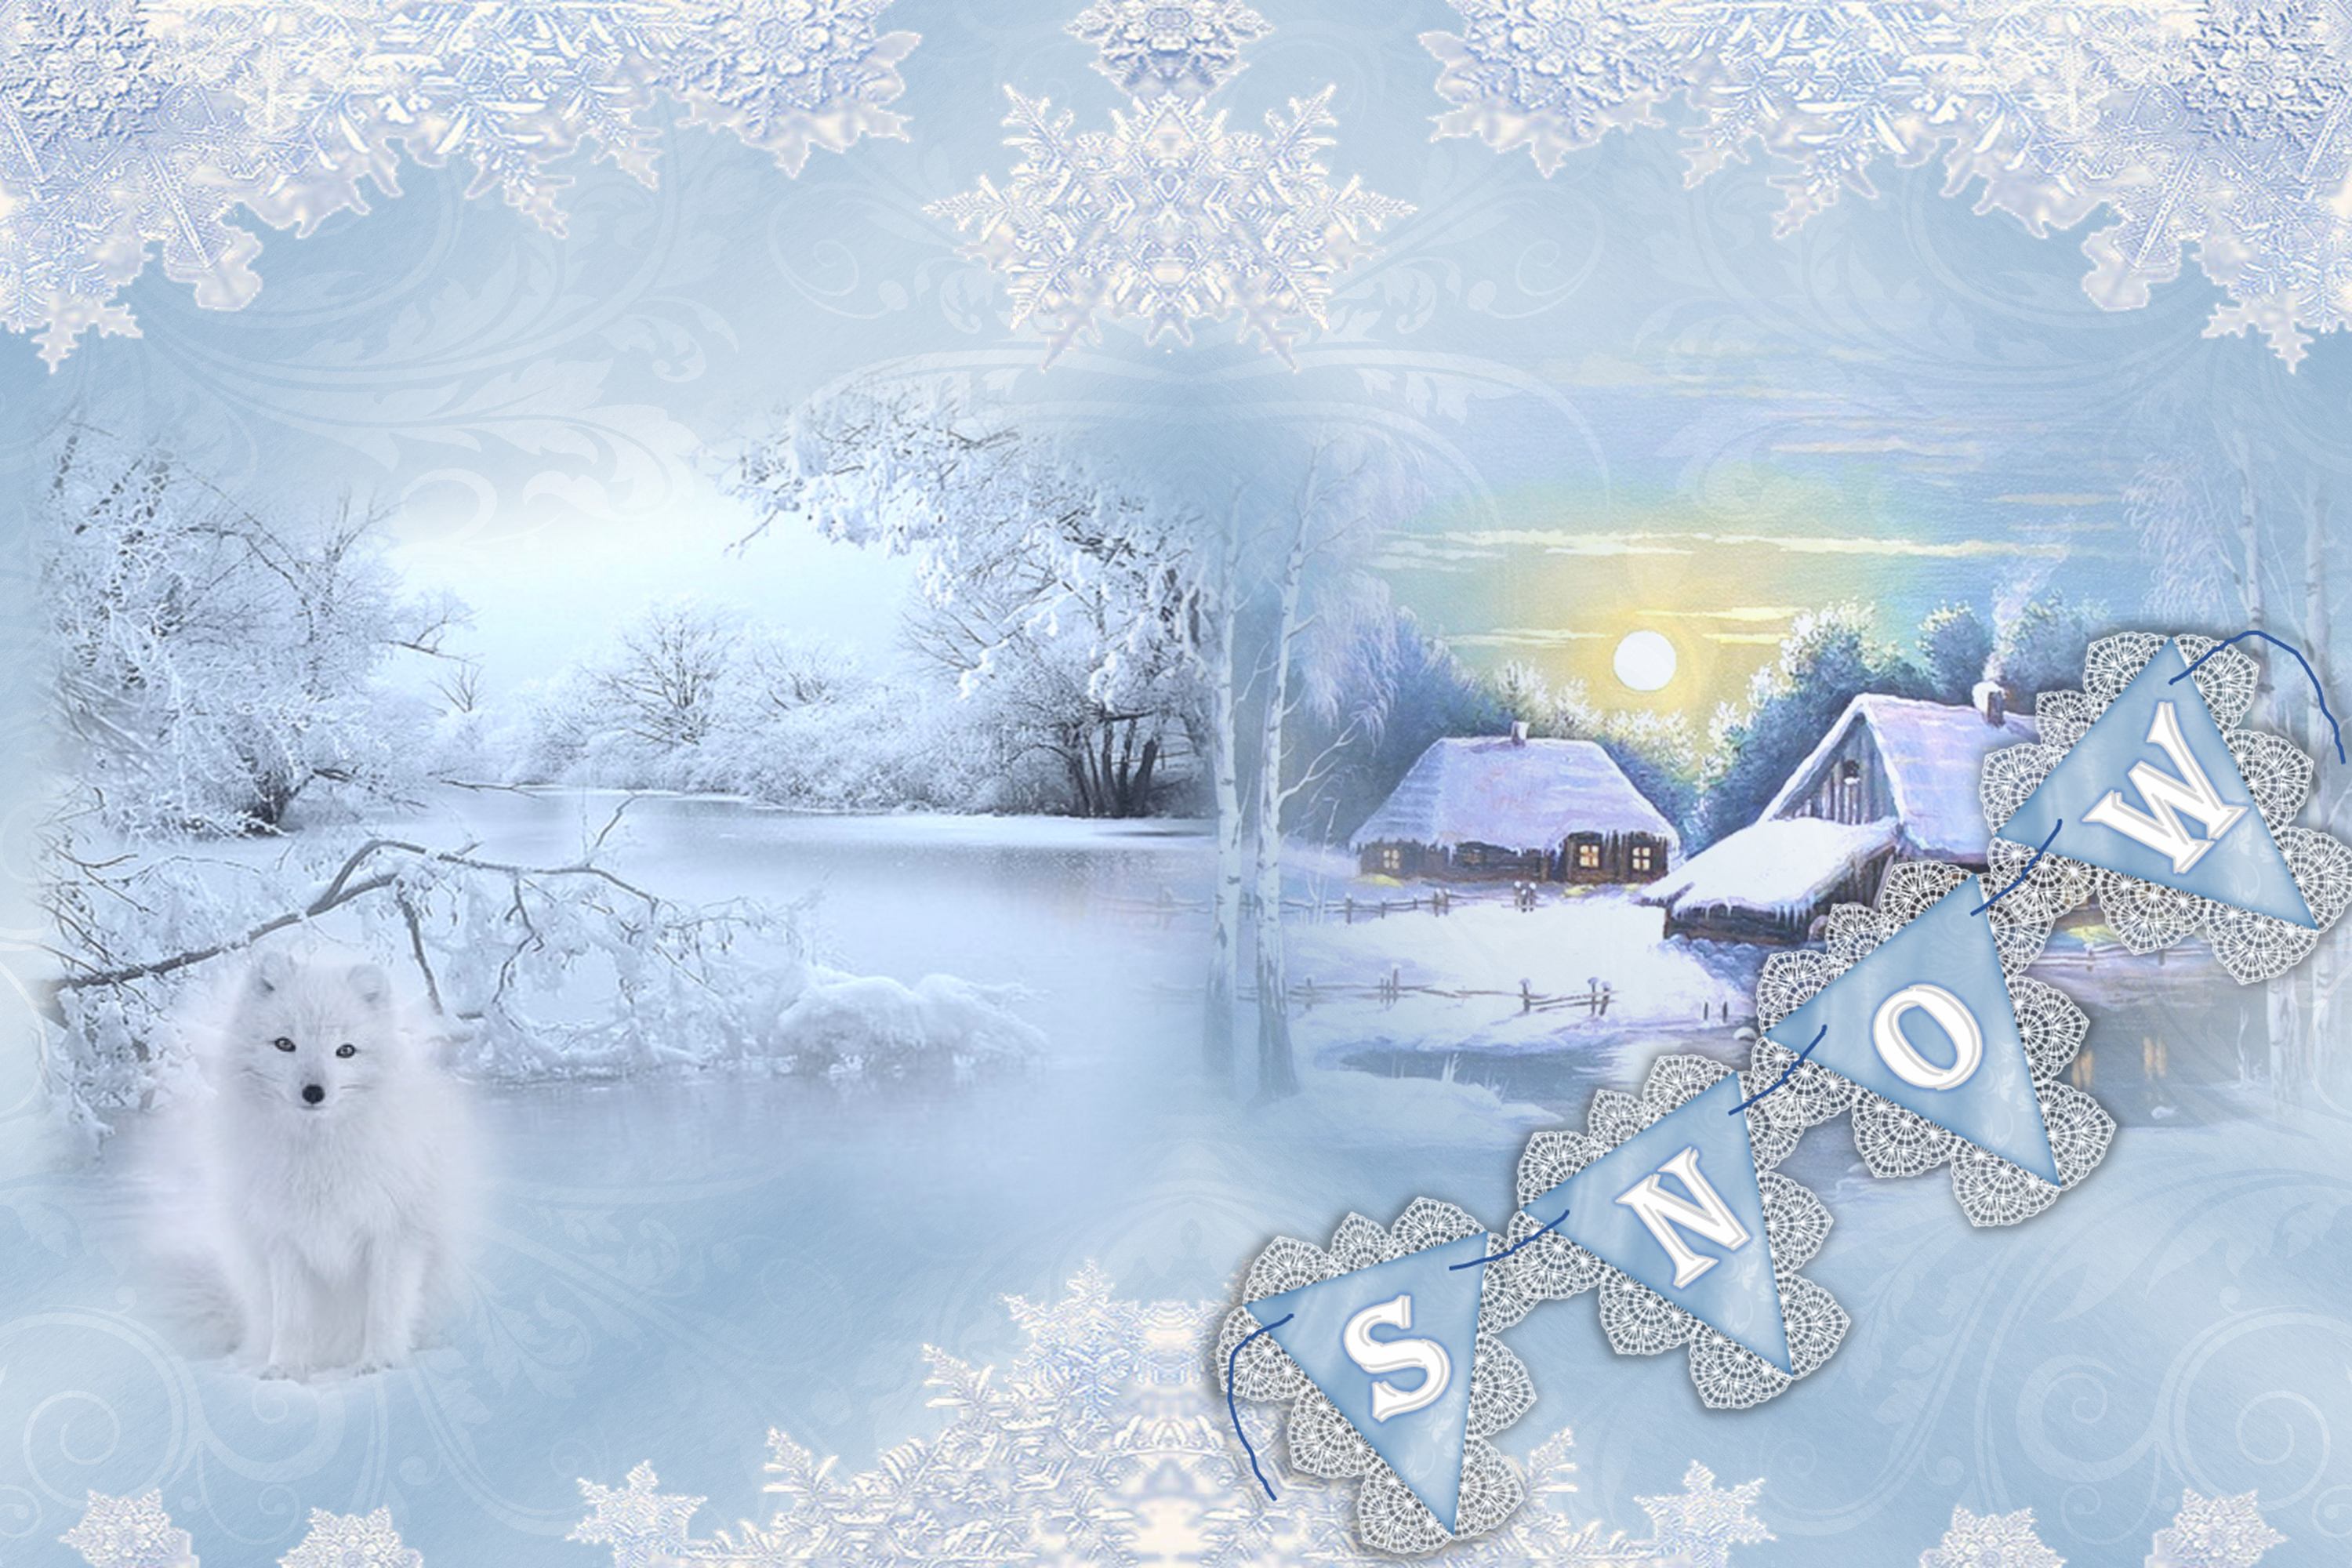 Winter Wonderland Backgrounds free clipart and ephemera. CU.